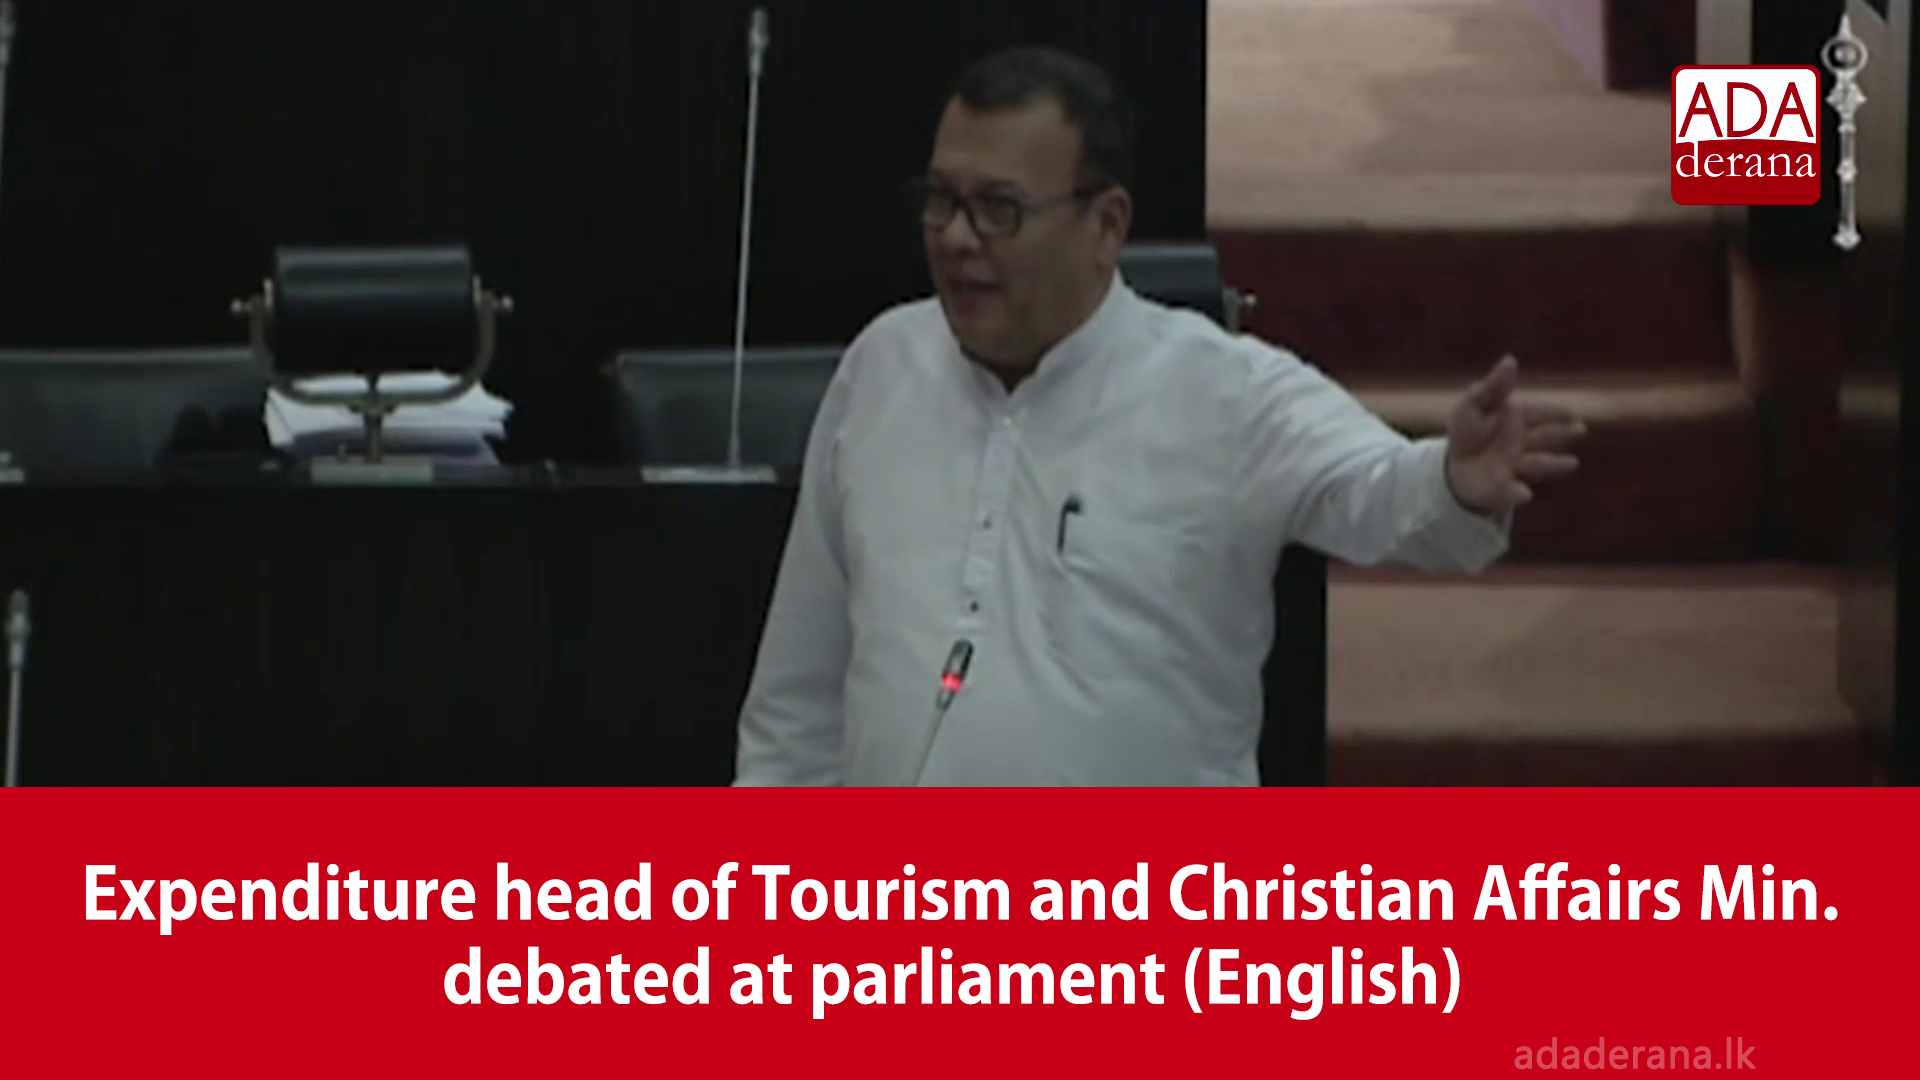 Expenditure head of Tourism and Christian Affairs Min. debated at parliament (English)